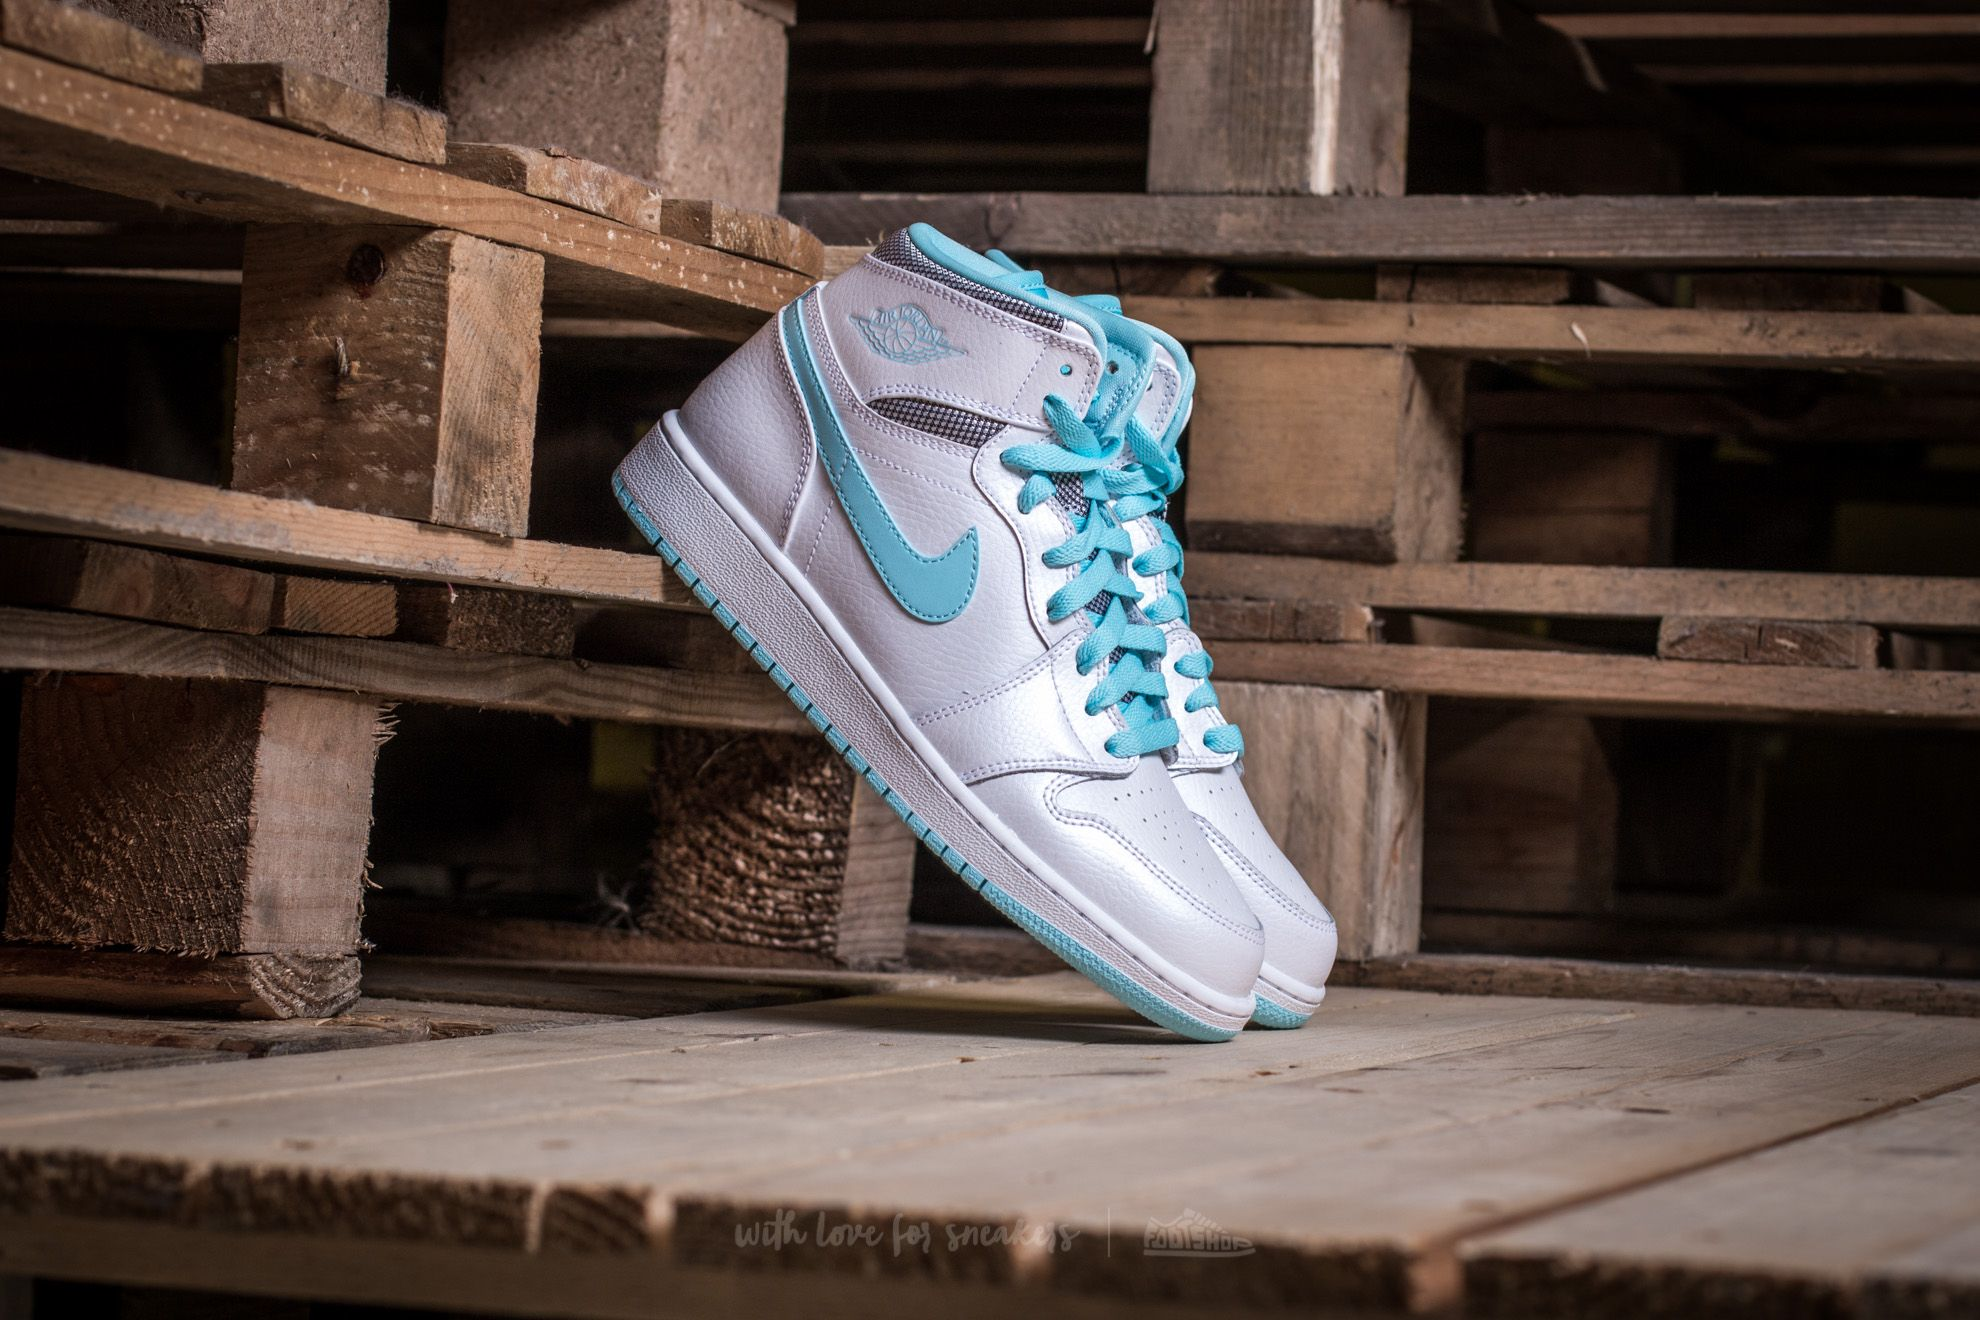 Air Jordan 1 Retro High GG White/ White-Still Blue